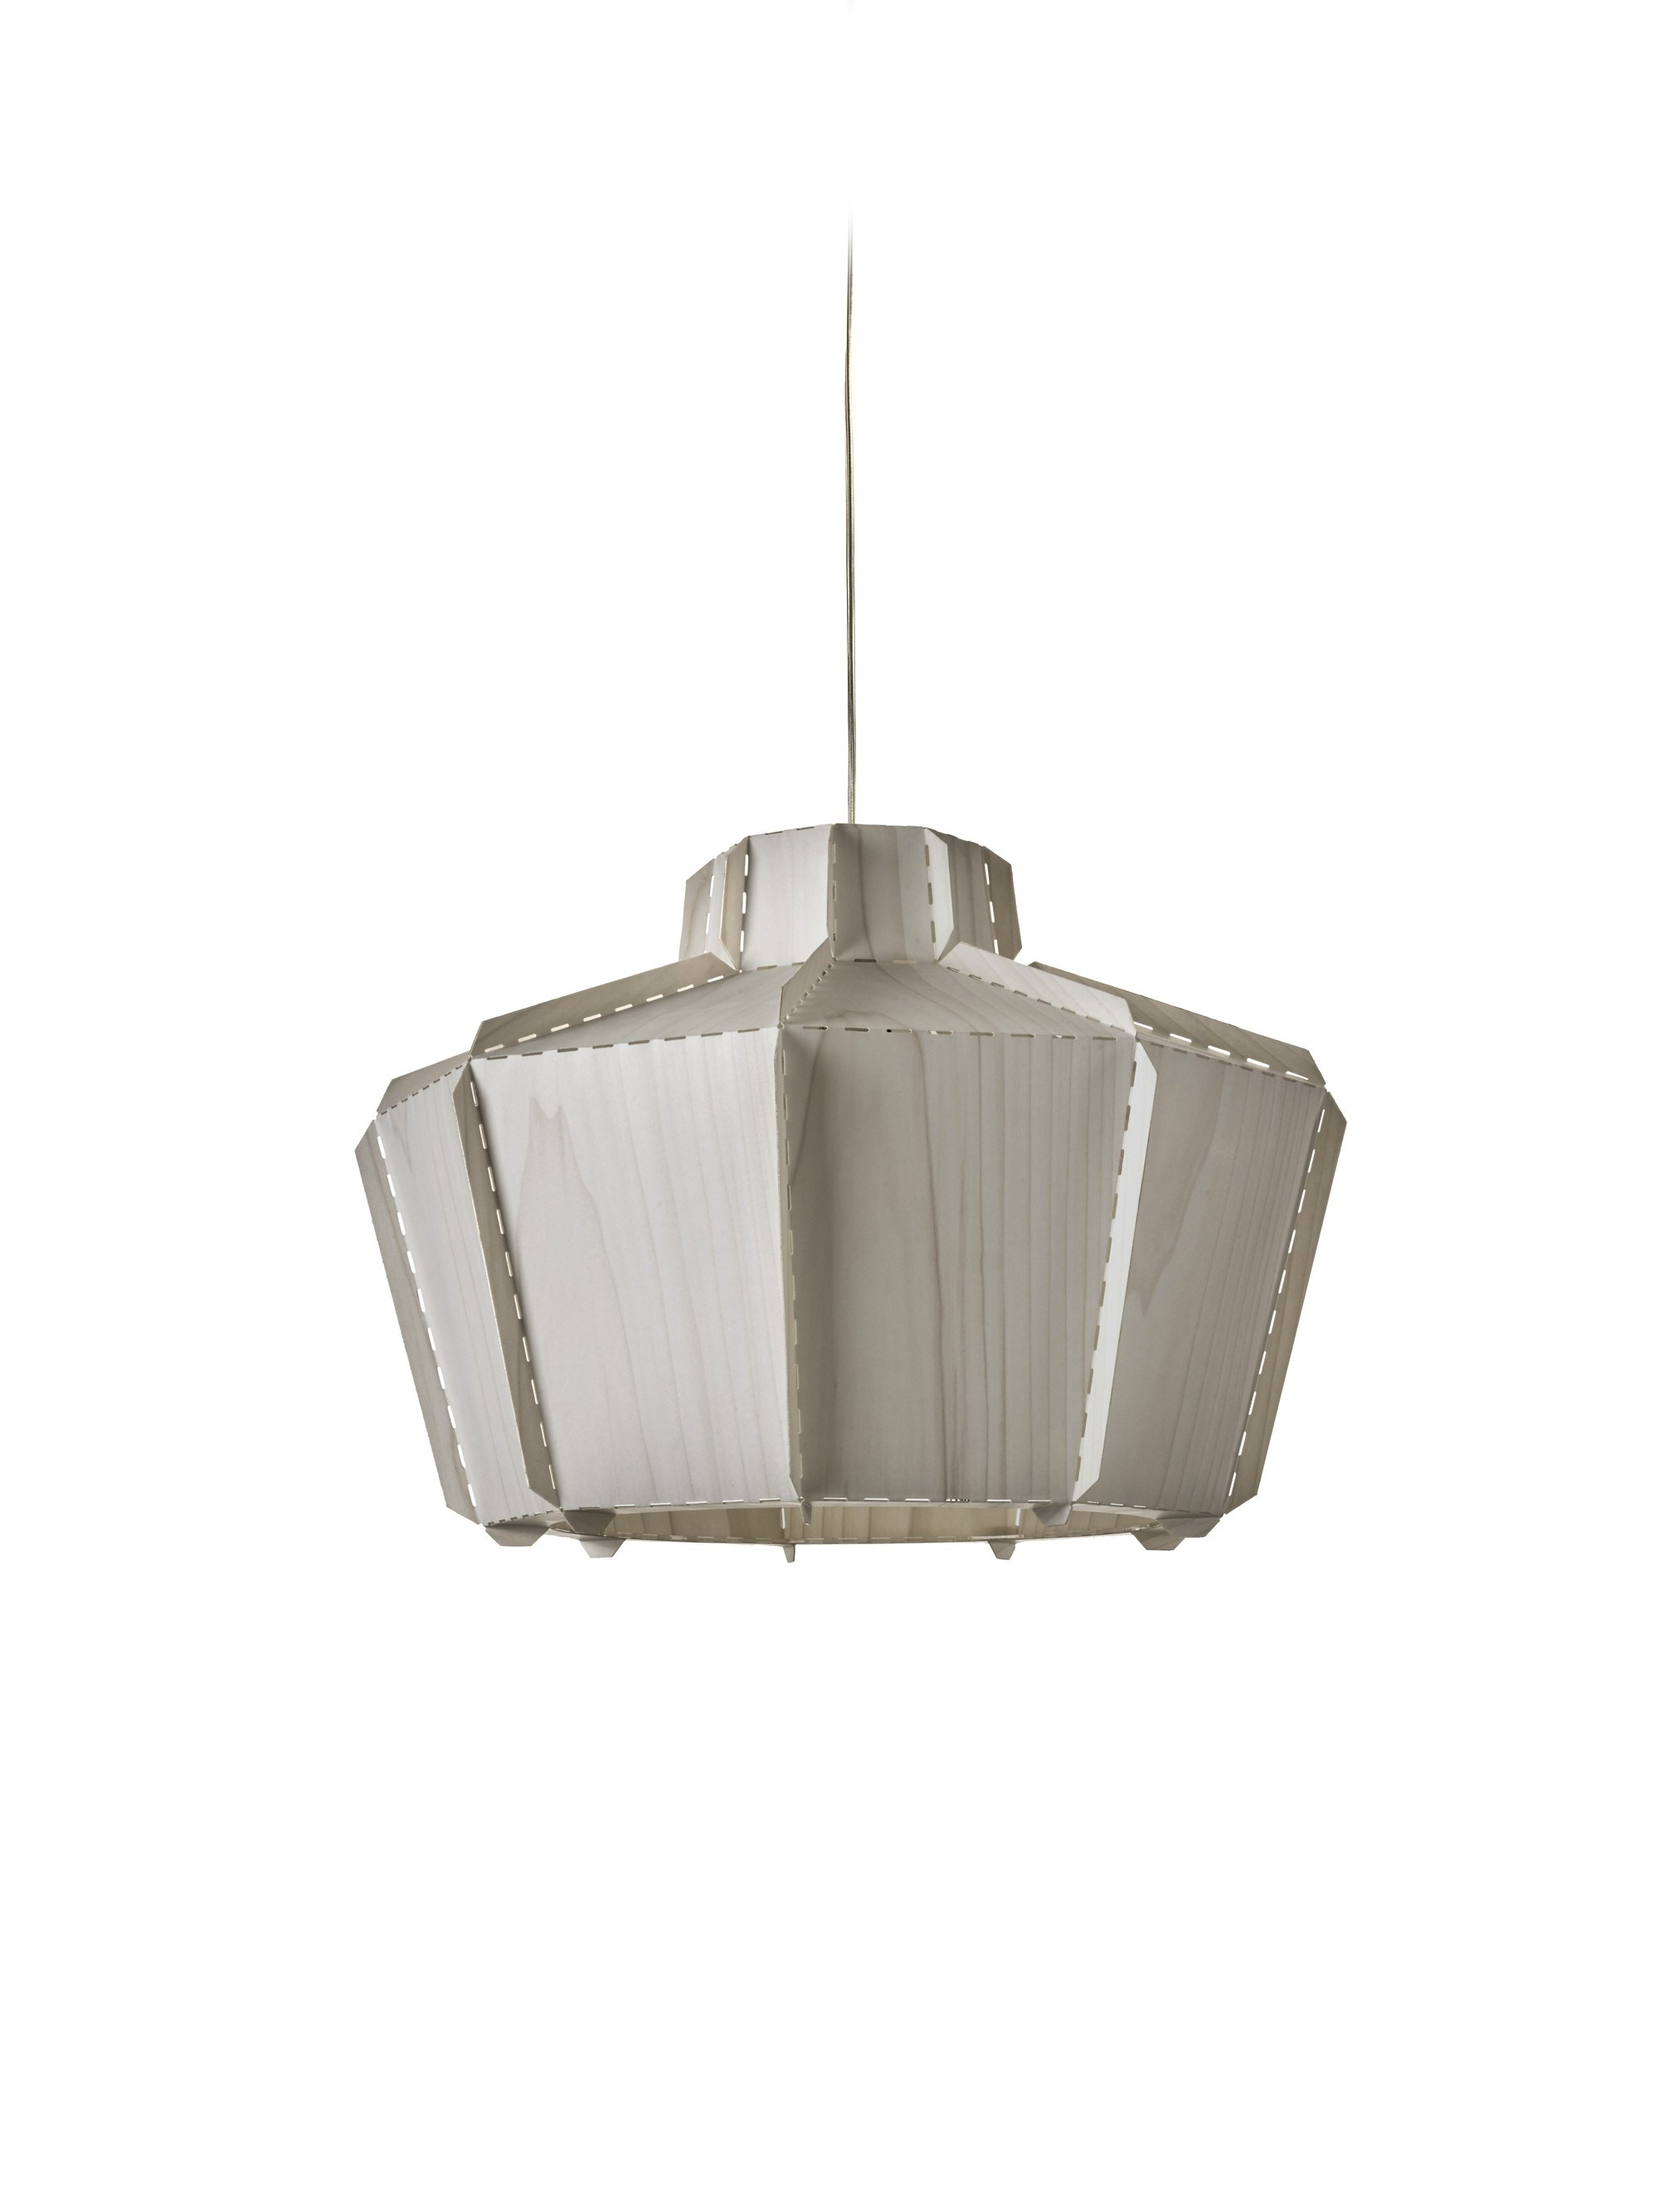 Lzf Stitches Mopti Suspension Lamp